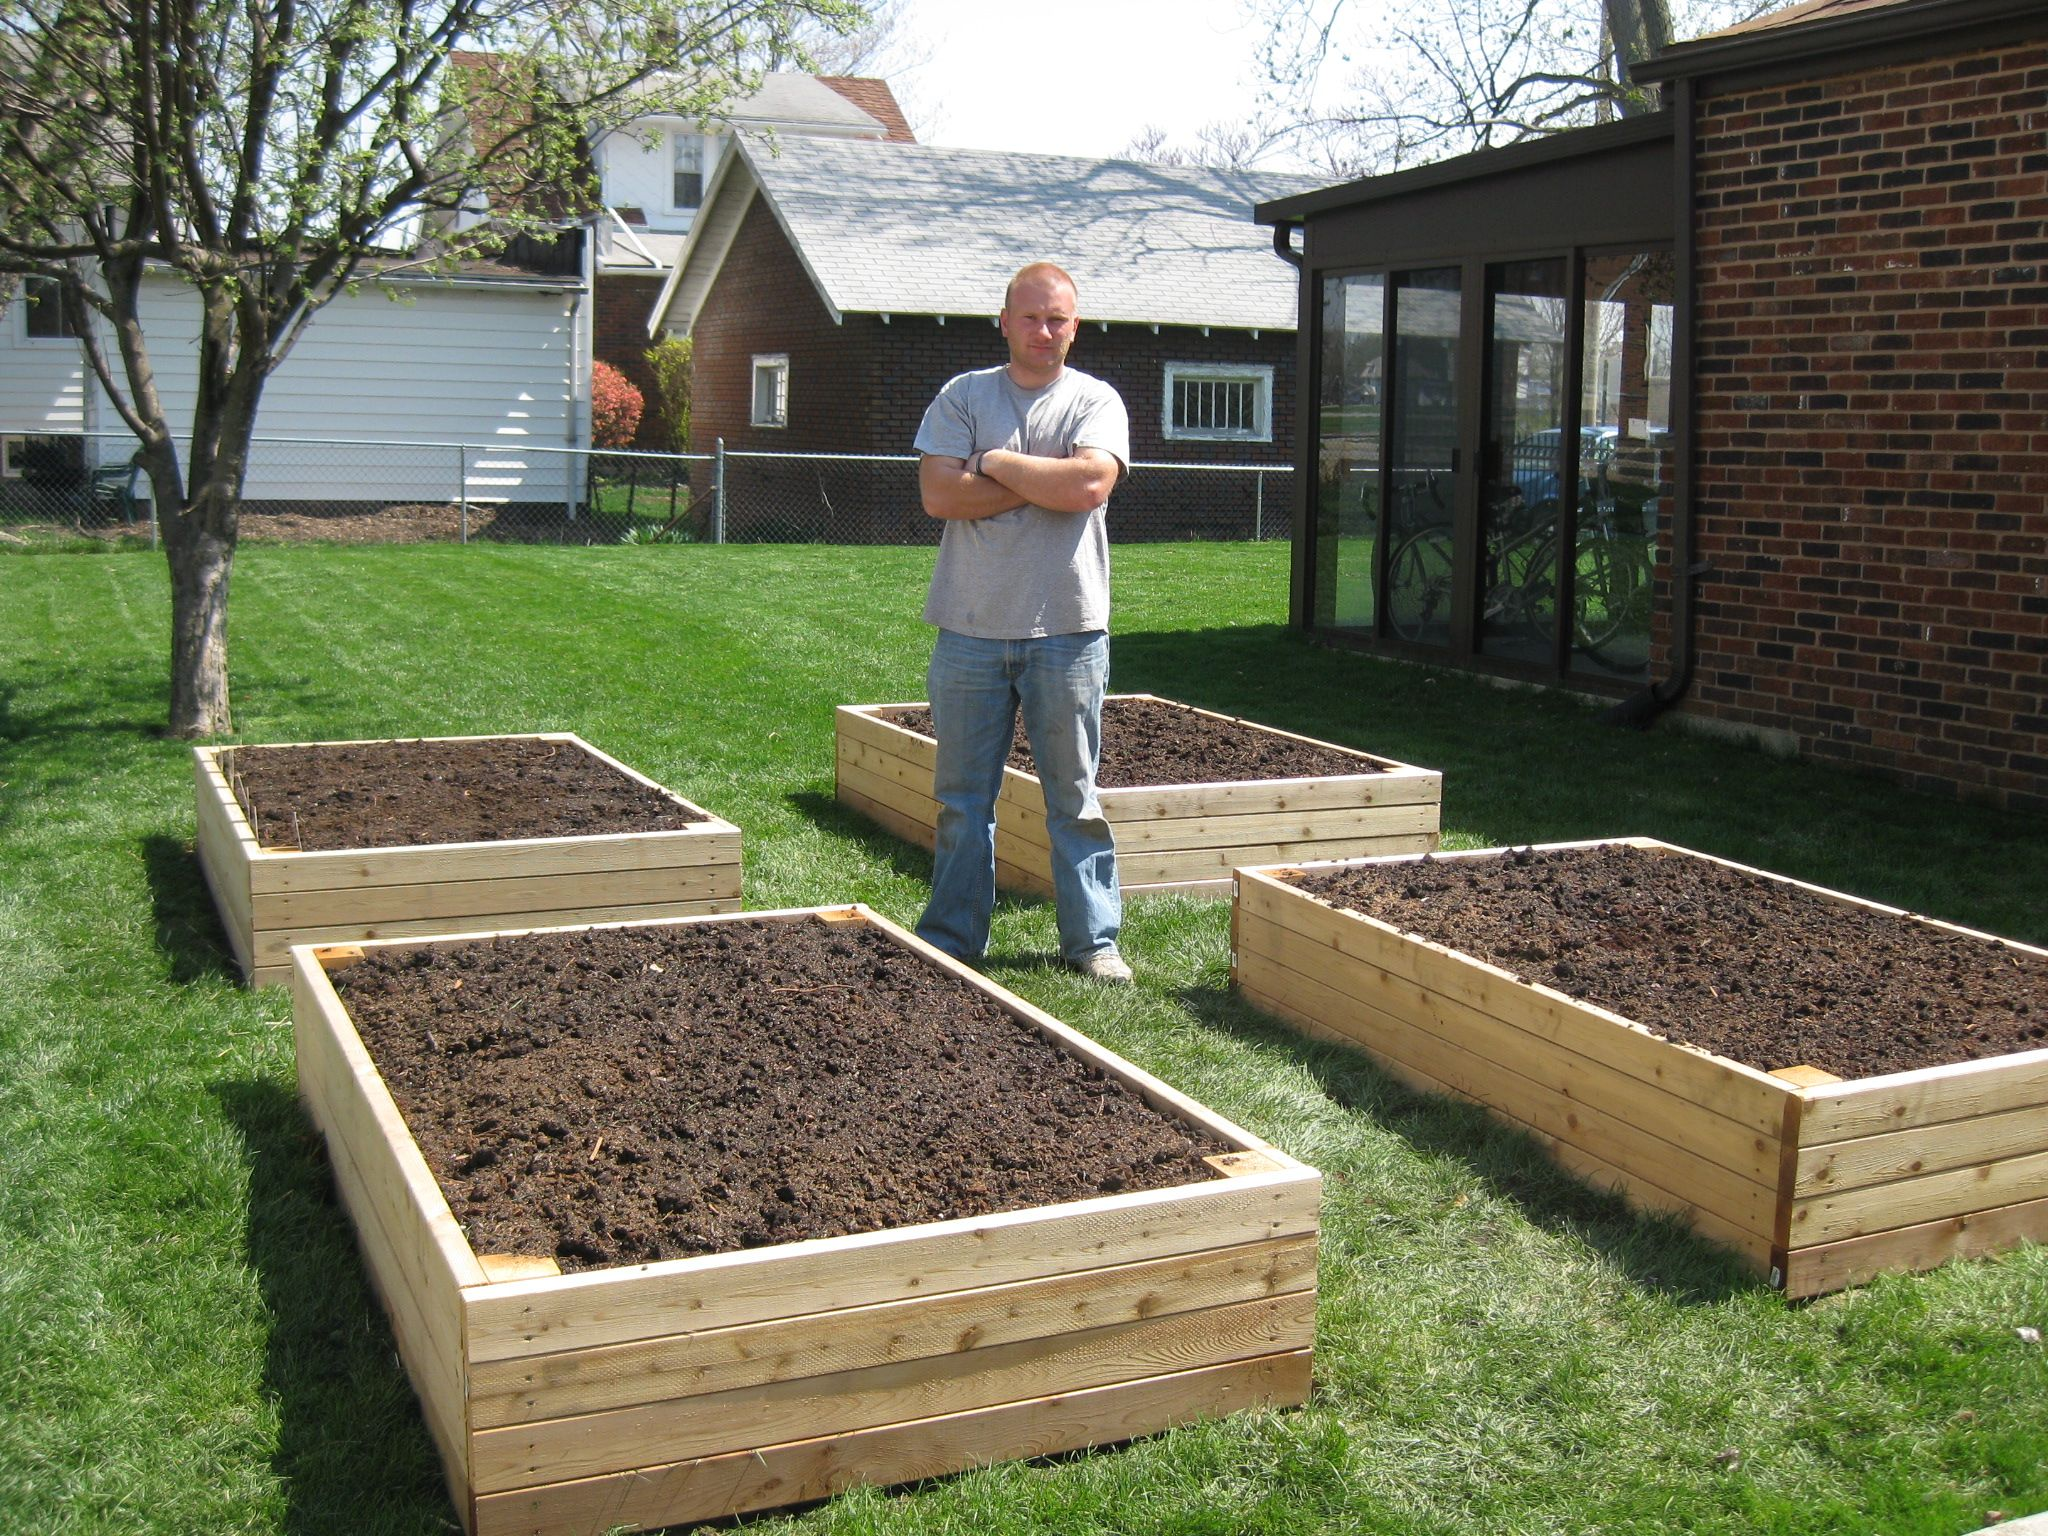 1000 images about Raised beds on Pinterest Gardens Raised beds